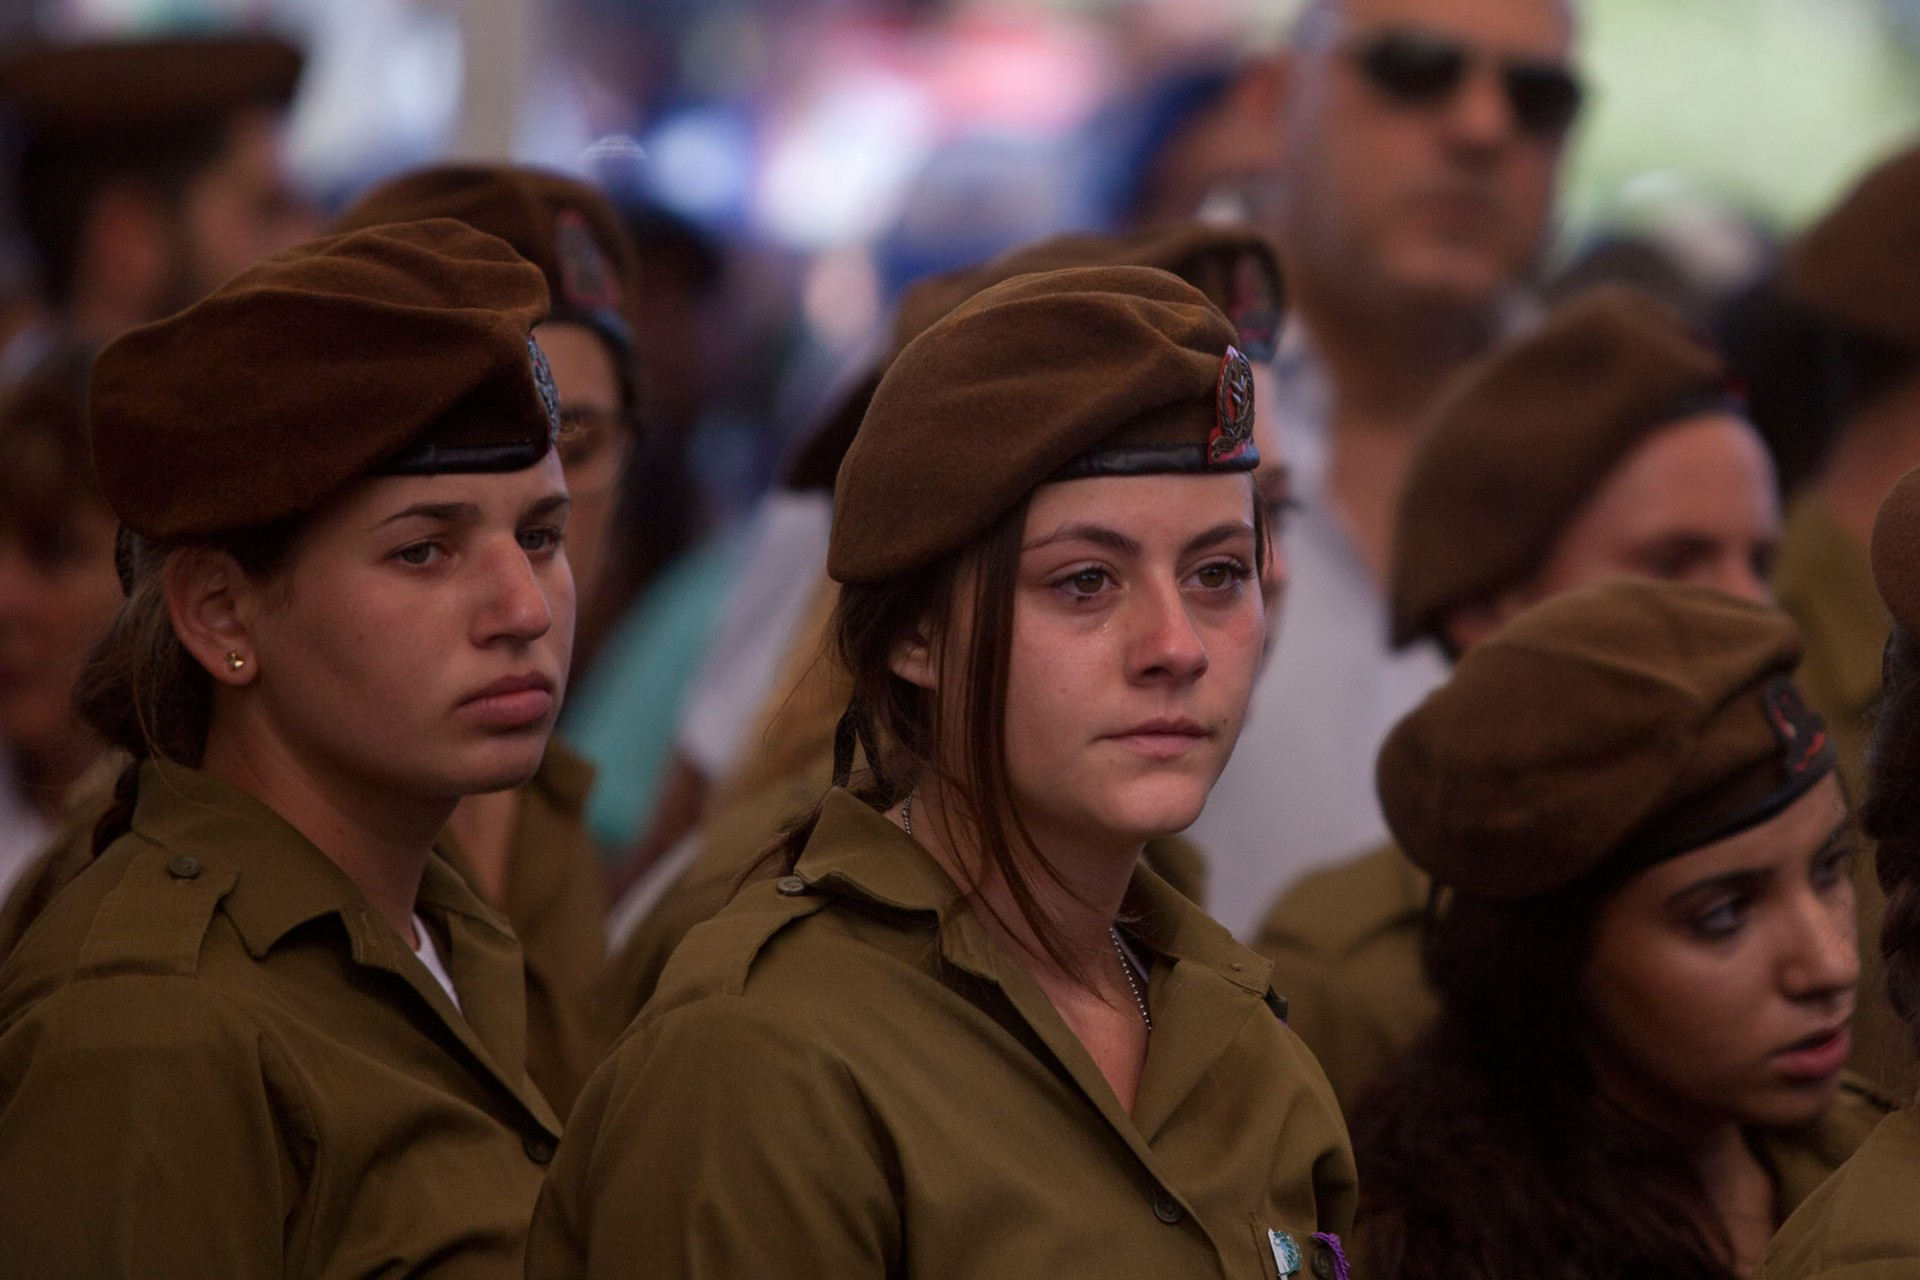 Israeli soldiers mourn during the funeral of Israeli soldier Moshe Malko on July 21, 2014 in Jerusalem, Israel.